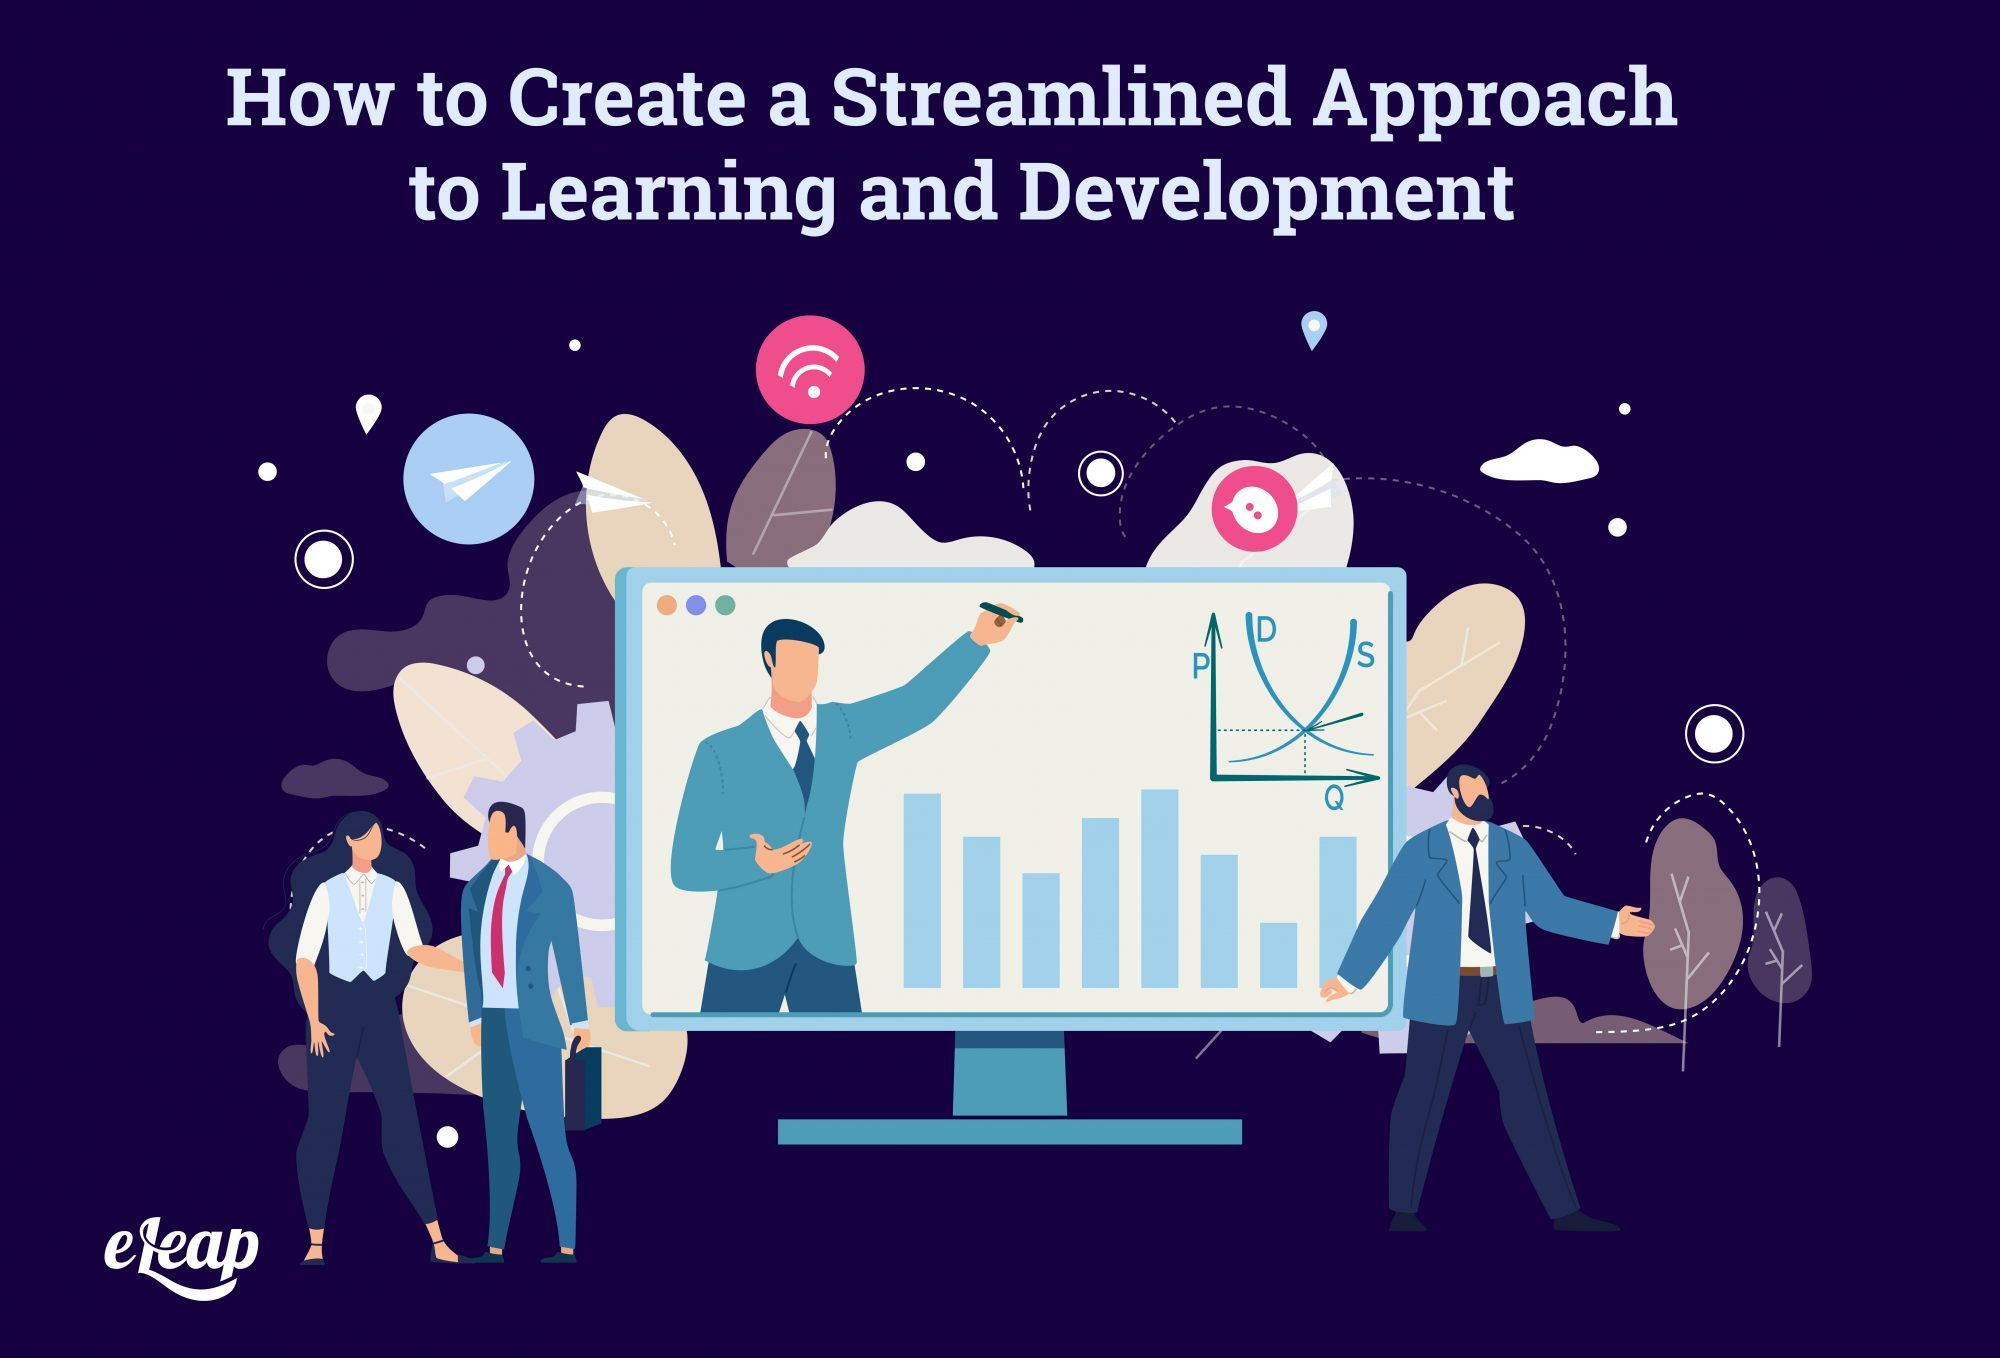 How to Create a Streamlined Approach to Learning and Development